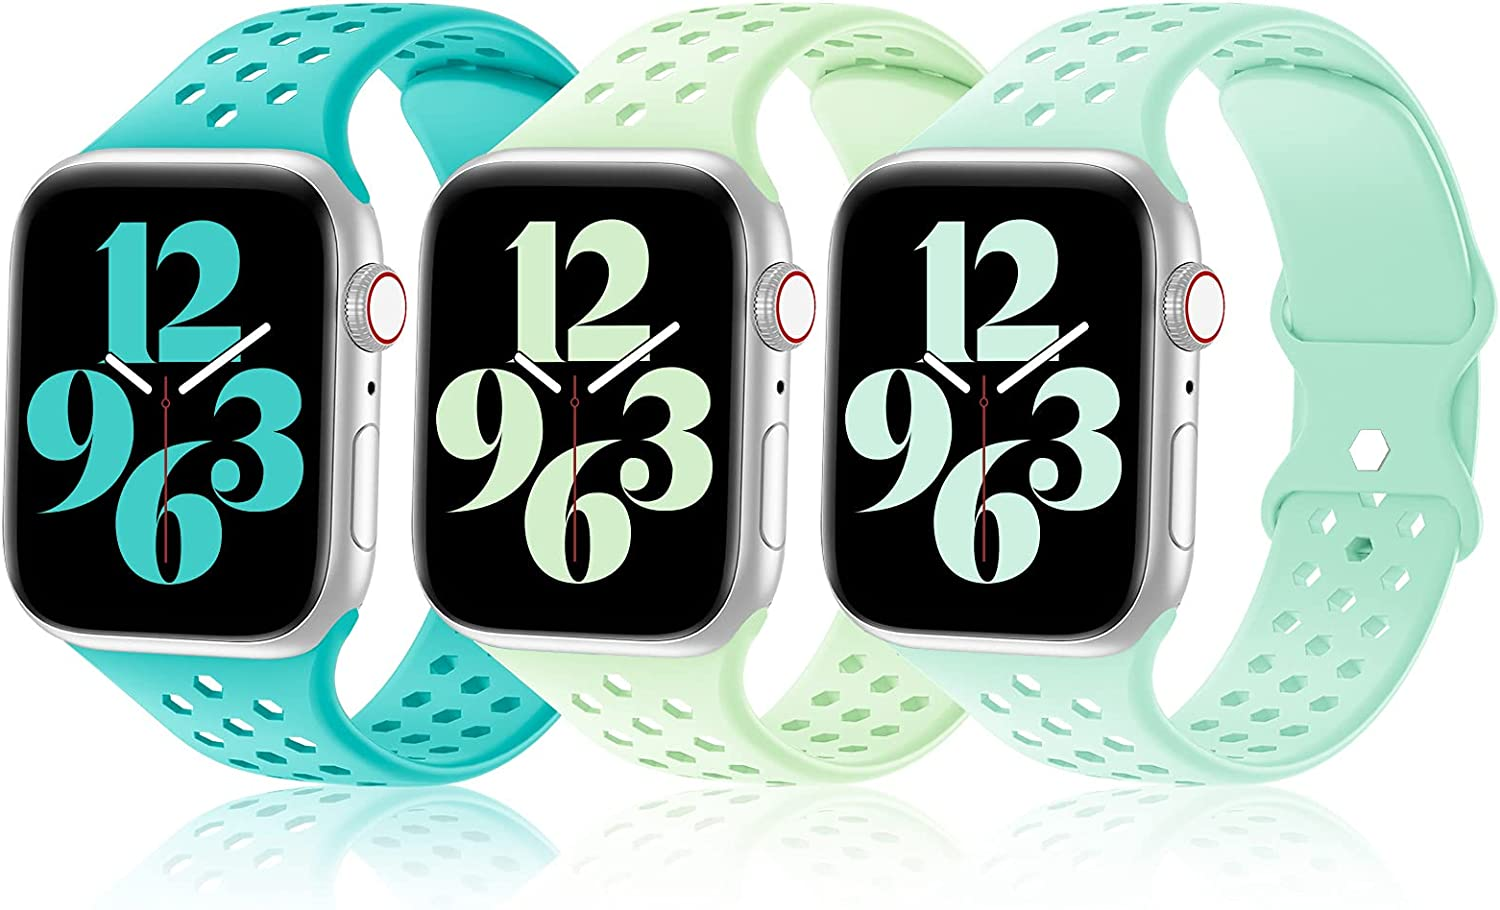 Hehighti 3 Pack Sport Silicone Bands Compatible with Apple Watch Band 38mm 40mm 42mm 44mm Women Men,Soft Unique Hexagonal Fashion Design Replacement Straps for iWatch Series 6 5 4 3 2 1 SE